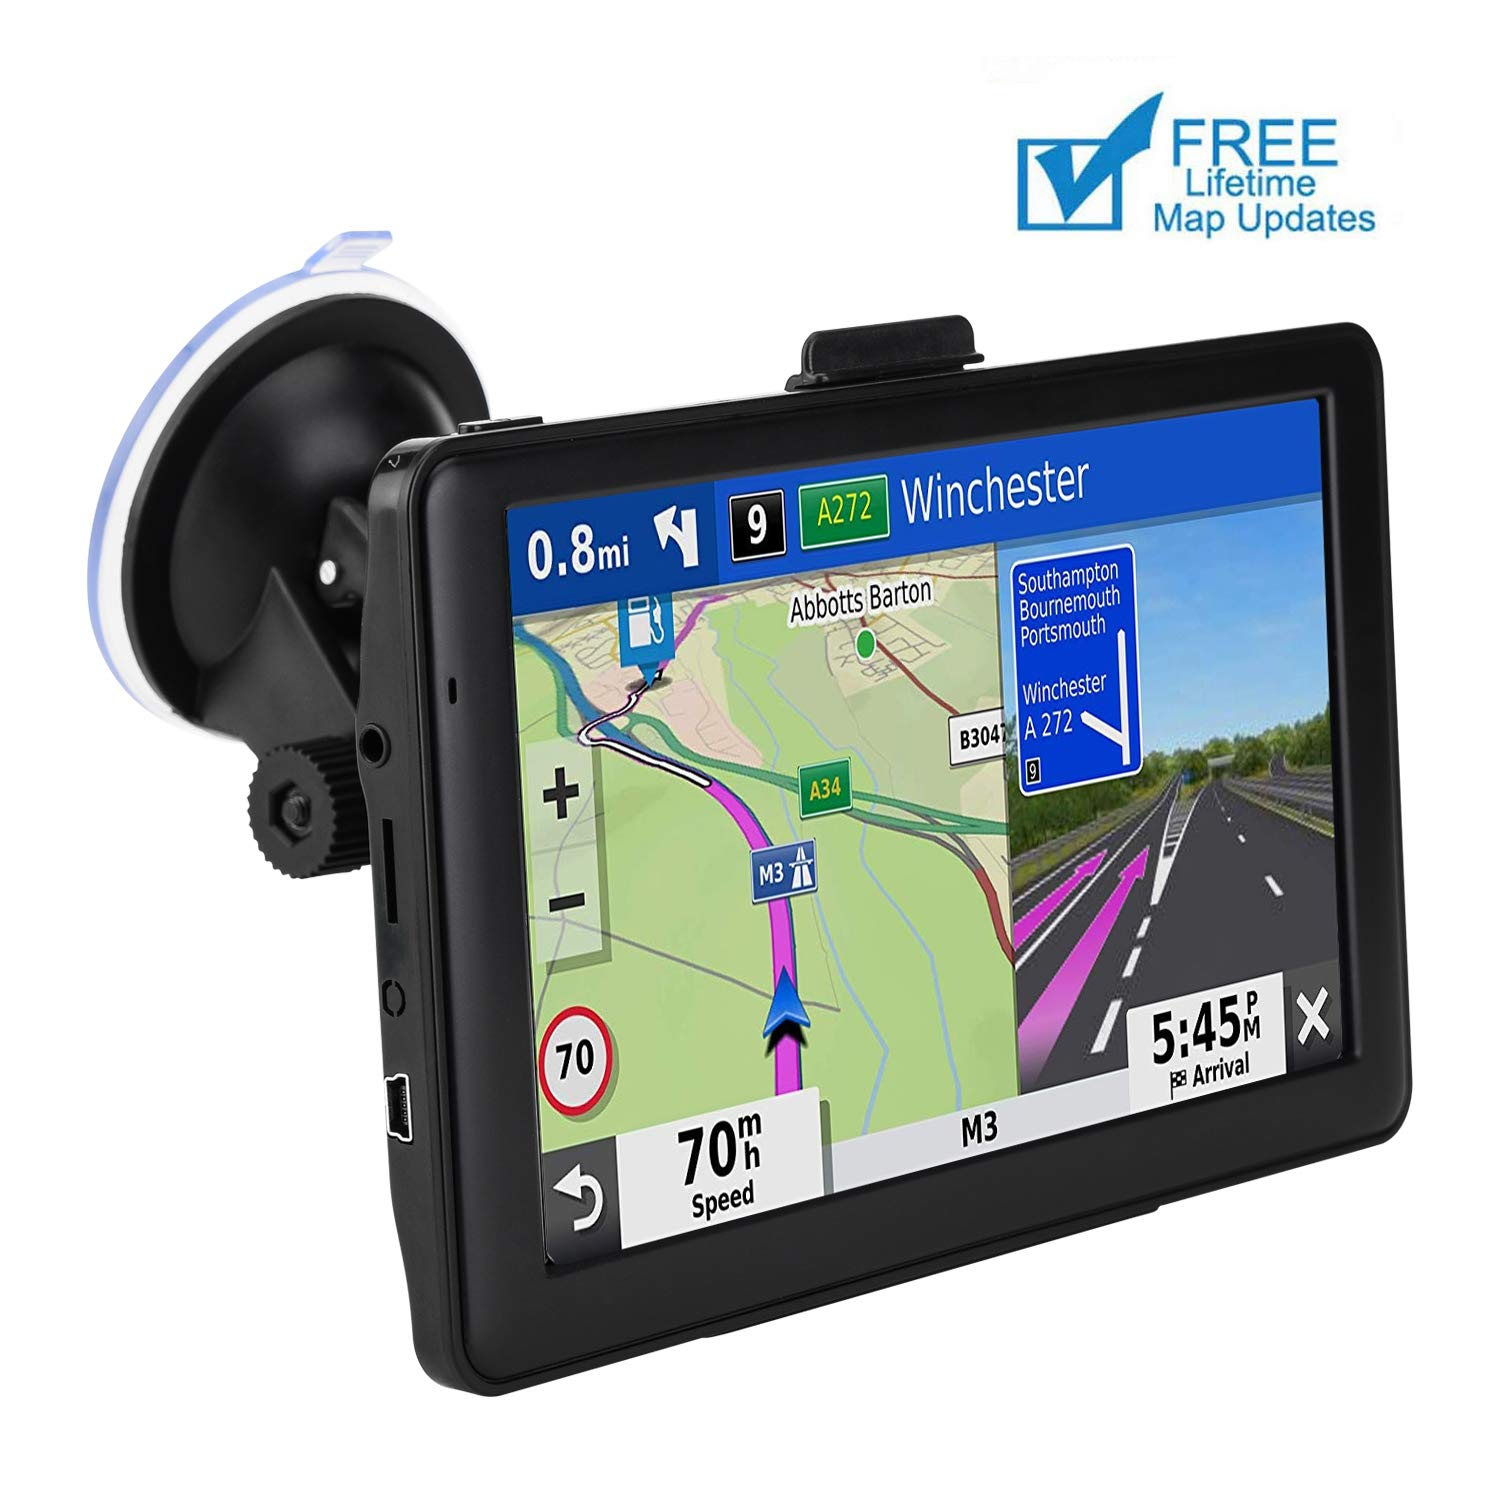 GPS Navigation for Car, 7 Inch 8GB HD Touch Screen Built-in 256MB GPS Navigation System Spoken Turn-by-Turn Directions for Car Vehicle GPS Navigator with Lifetime Map Update (US) by JOGANVE